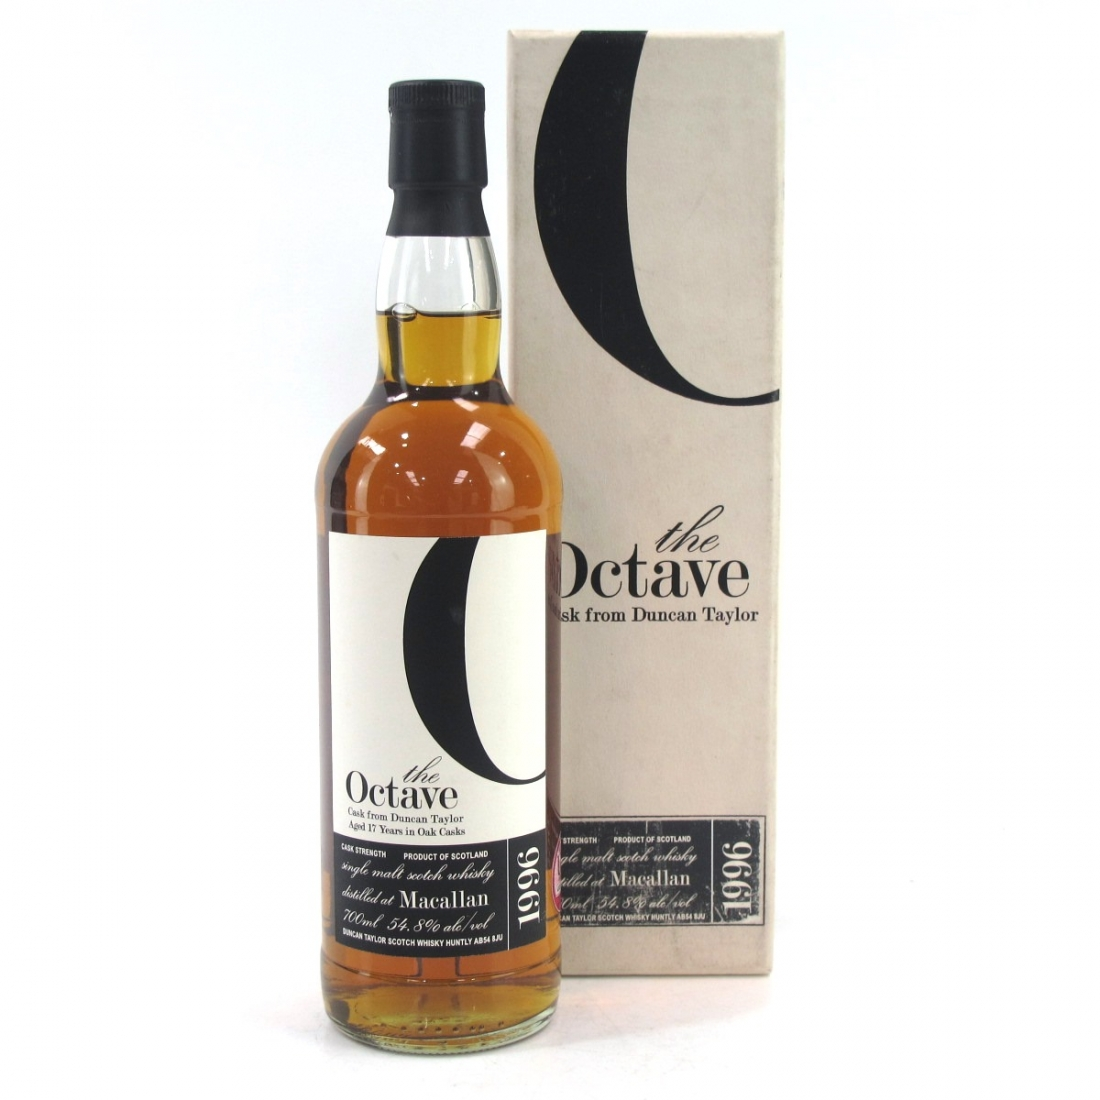 Macallan 1996 Duncan Taylor 17 Year Old Octave